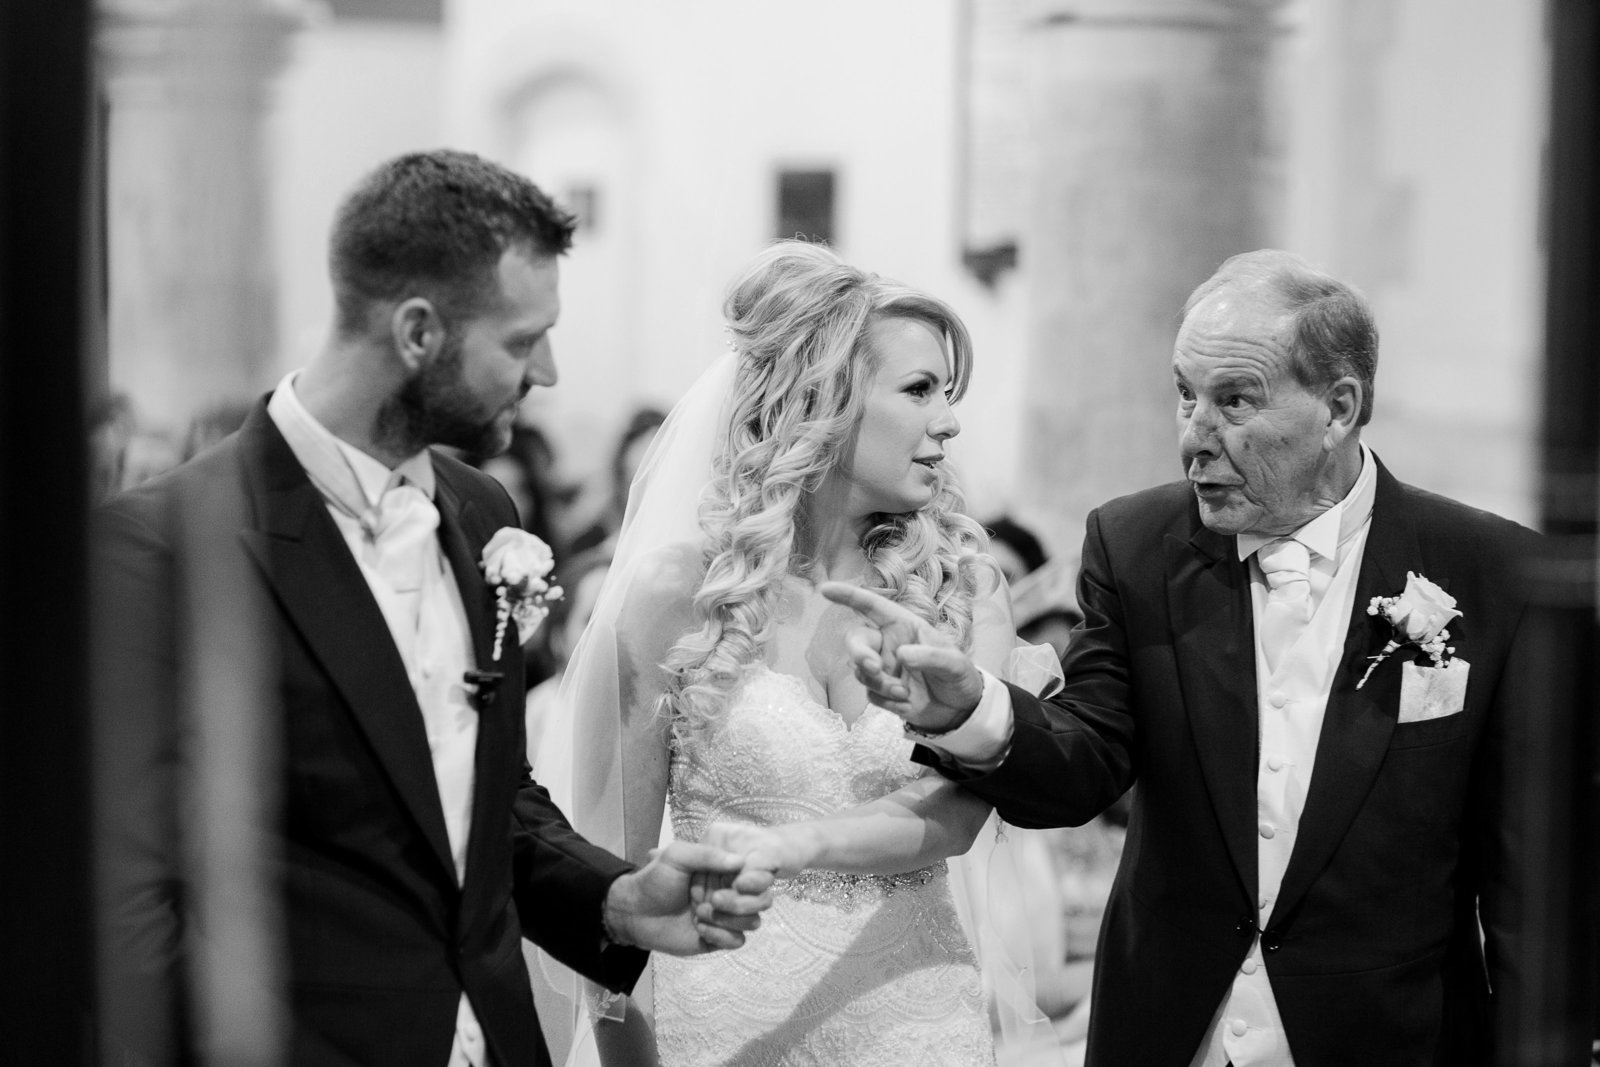 Amazing documentary wedding photography by Adorlee here, a black and white reportage photo in a church of the  father of the bride threatening the groom while giving his daughter away during their wedding ceremony in West Sussex